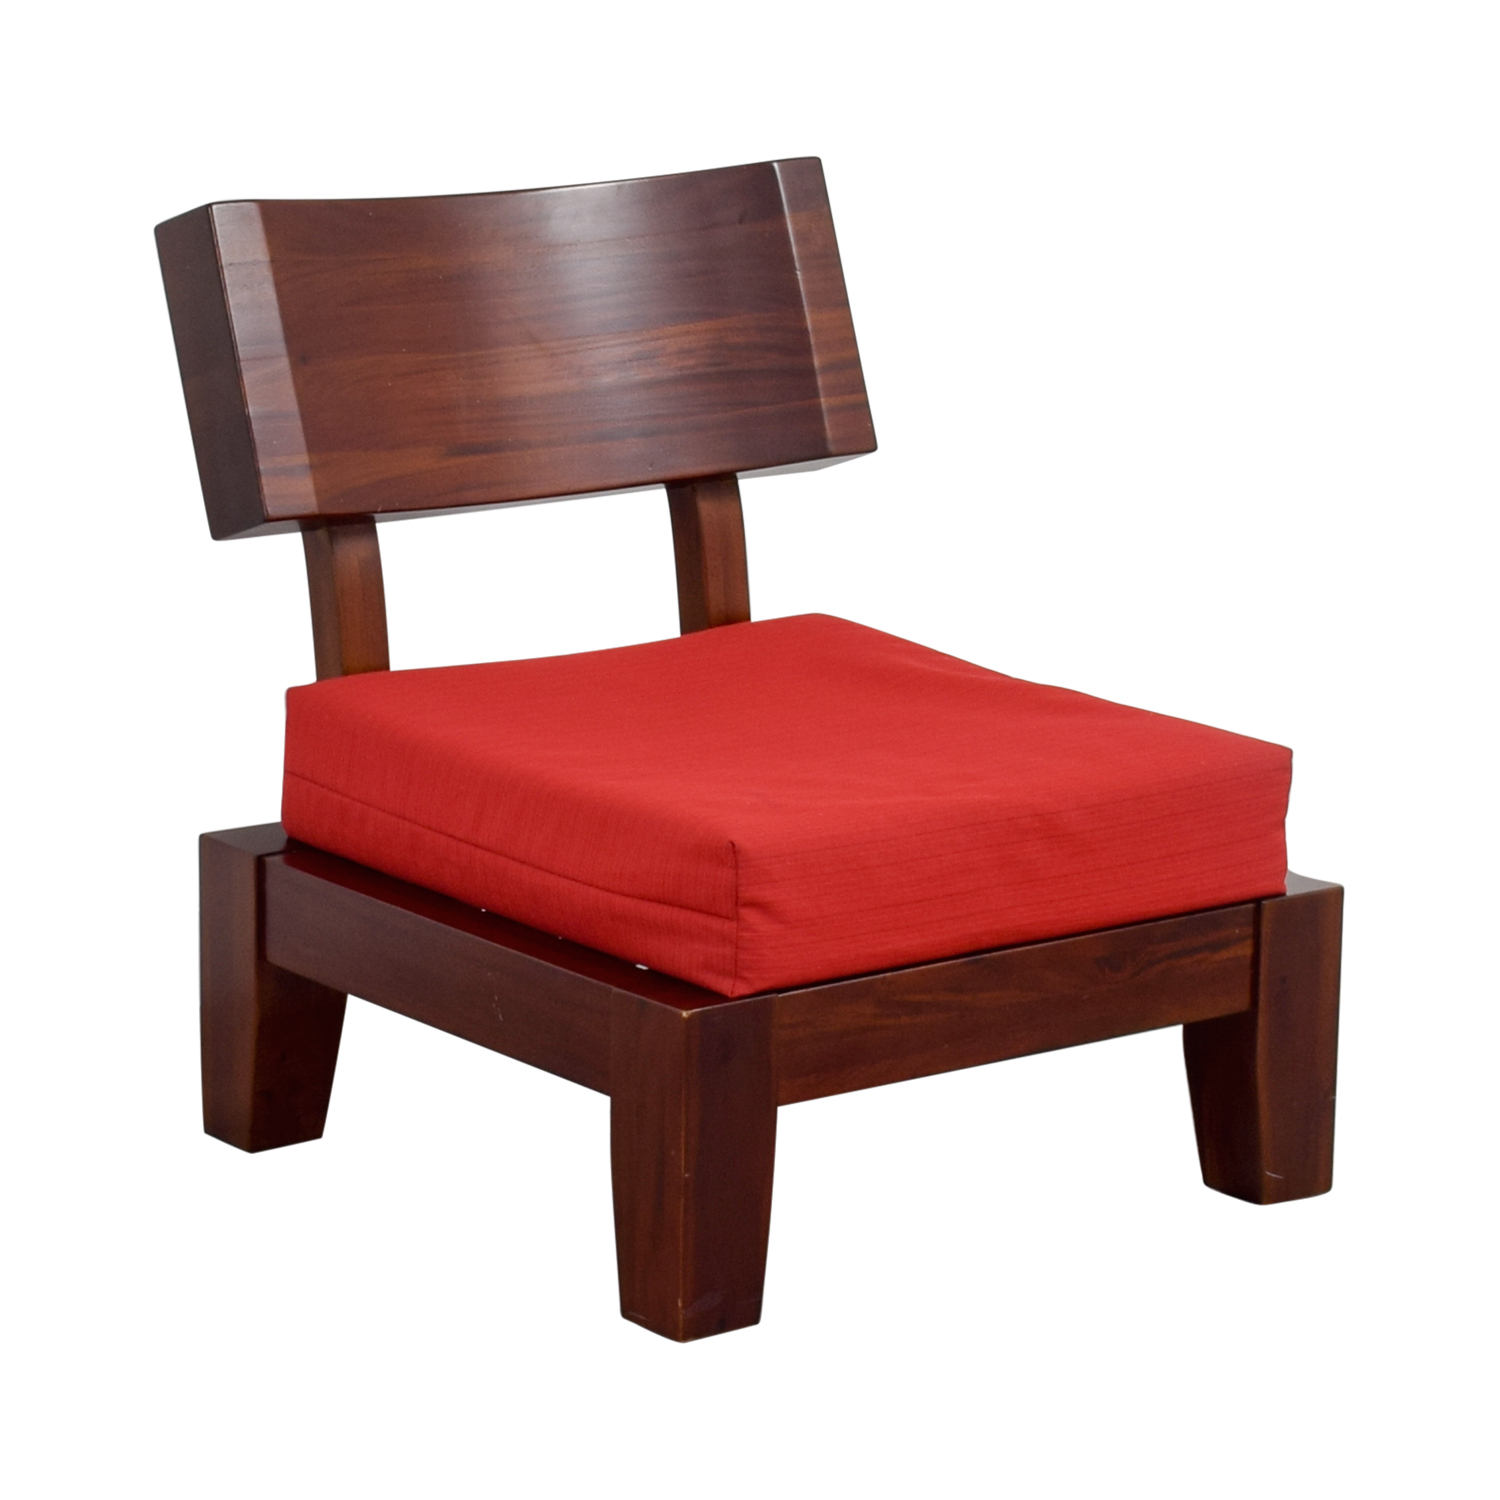 Haverty Furniture Sale. 73 OFF Haverty Haverty Red Wood